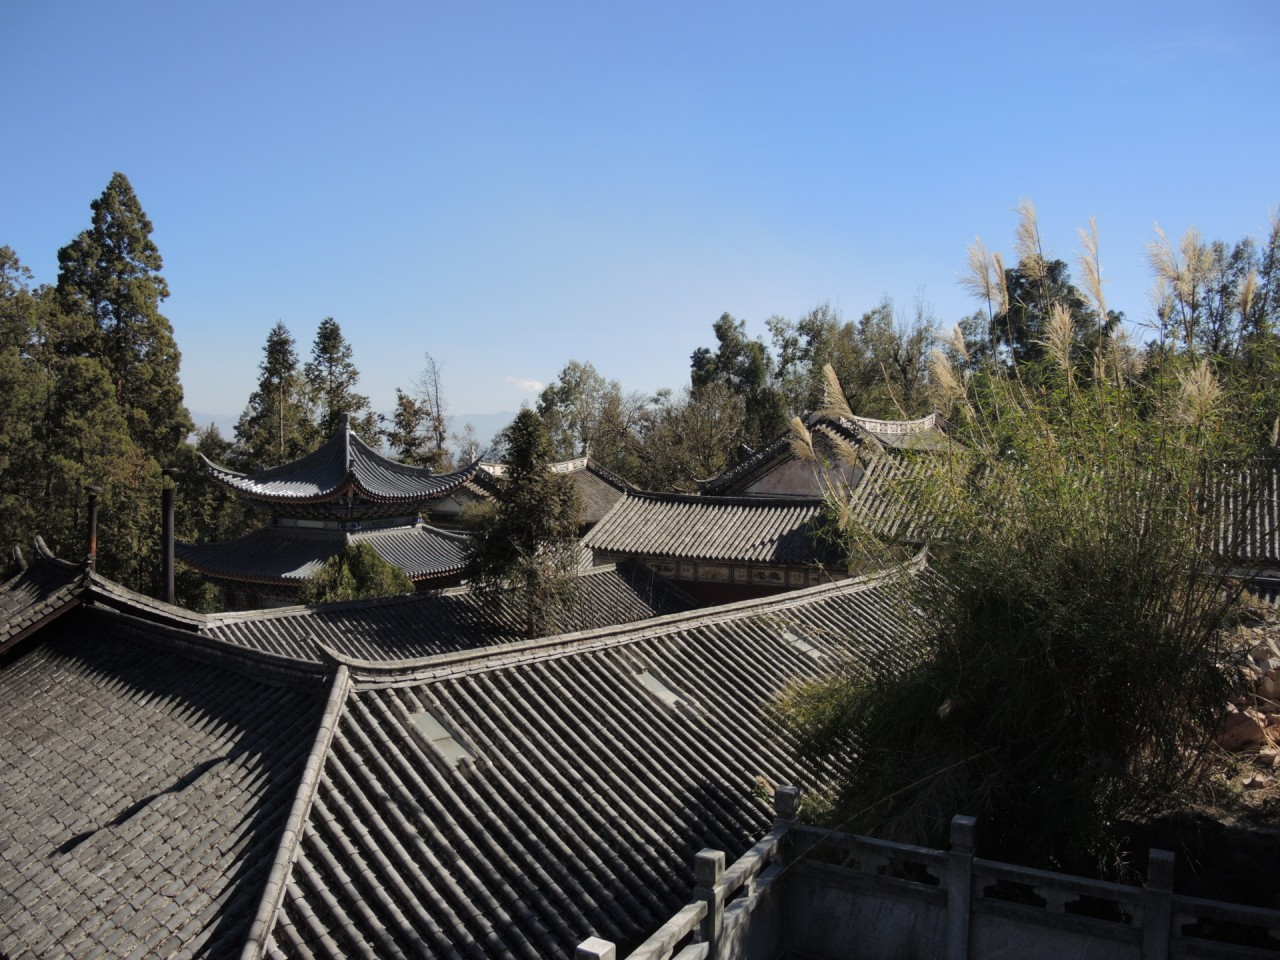 Wu Wei Si - Roofs